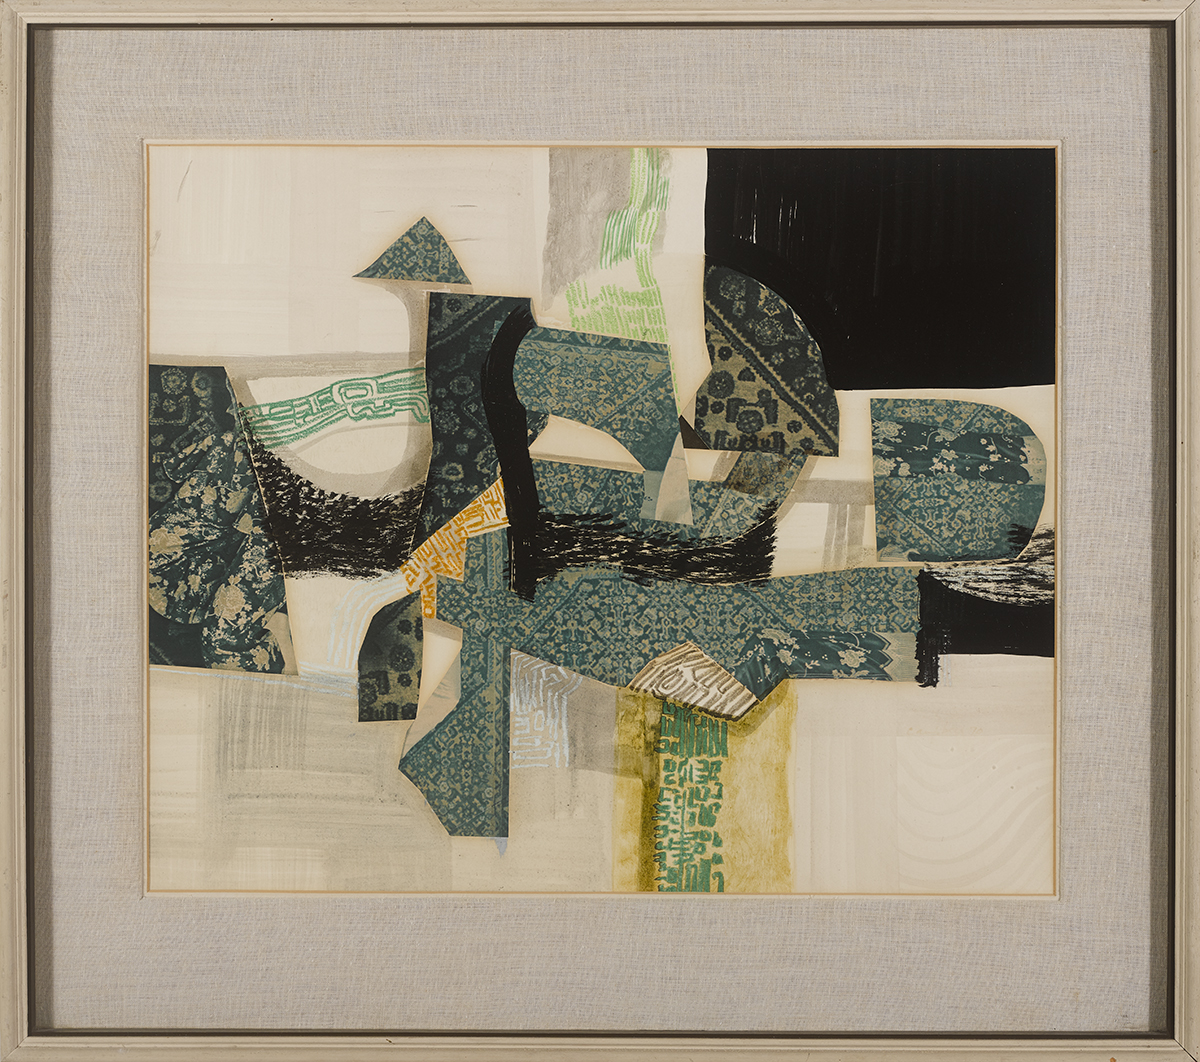 Lot 57 - George Campbell RHA (1917-1979)STILL LIFE COMPLEX mixed media titled on reverse 19.75 by 24.25in. (